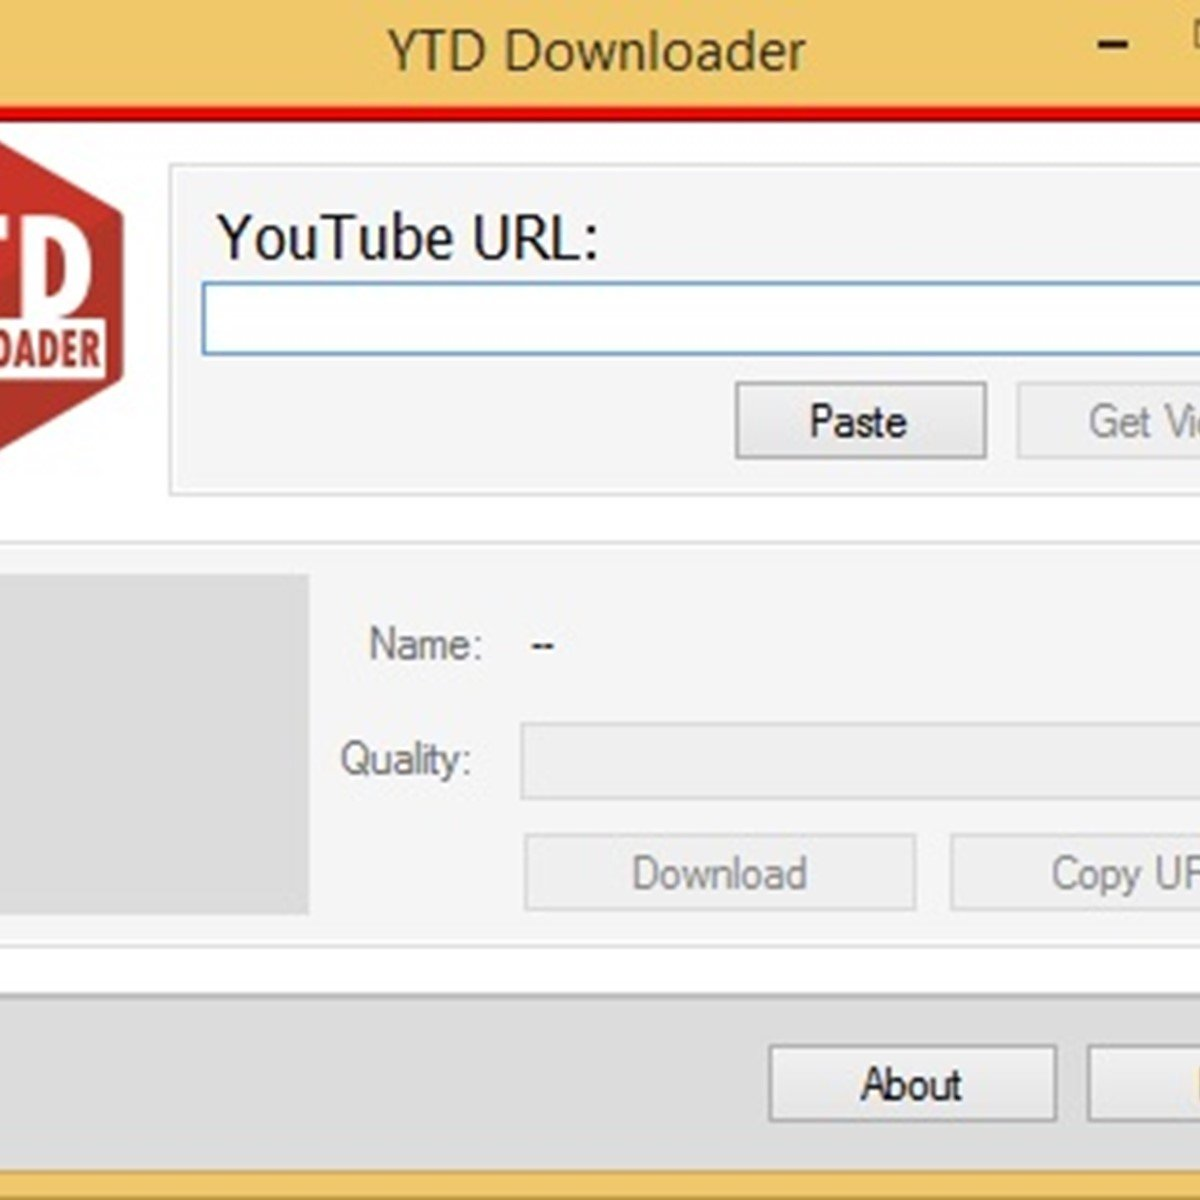 ydt youtube download